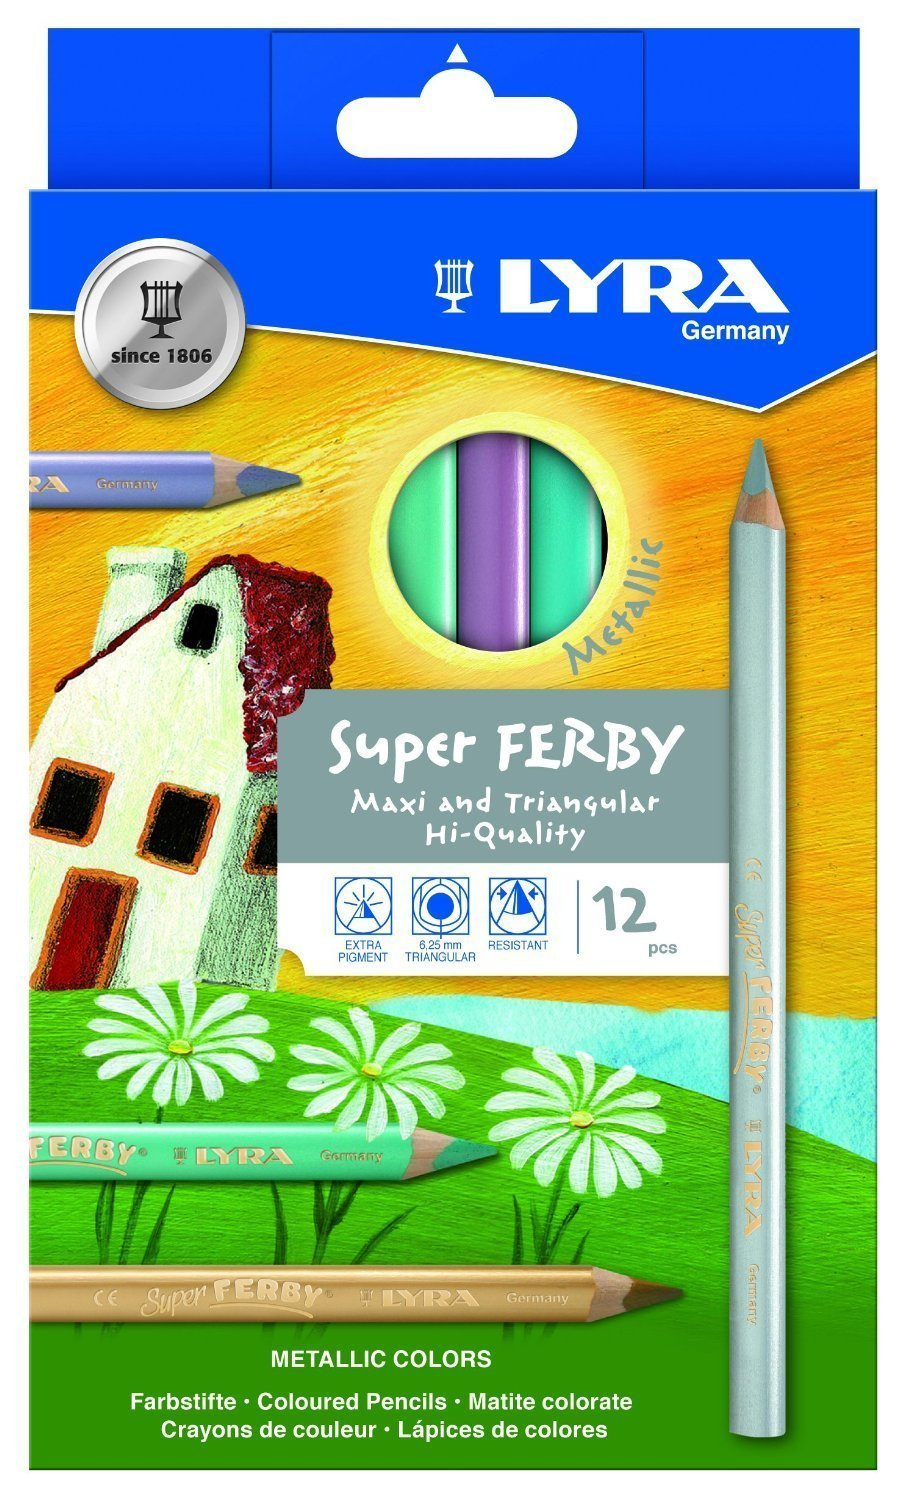 LYRA Super Ferby Lacquered Triangular Giant Colored Pencils, 6.25 Millimeter Lead Core, Set of 12 Pencils, Assorted Metallic Colors (3721122)